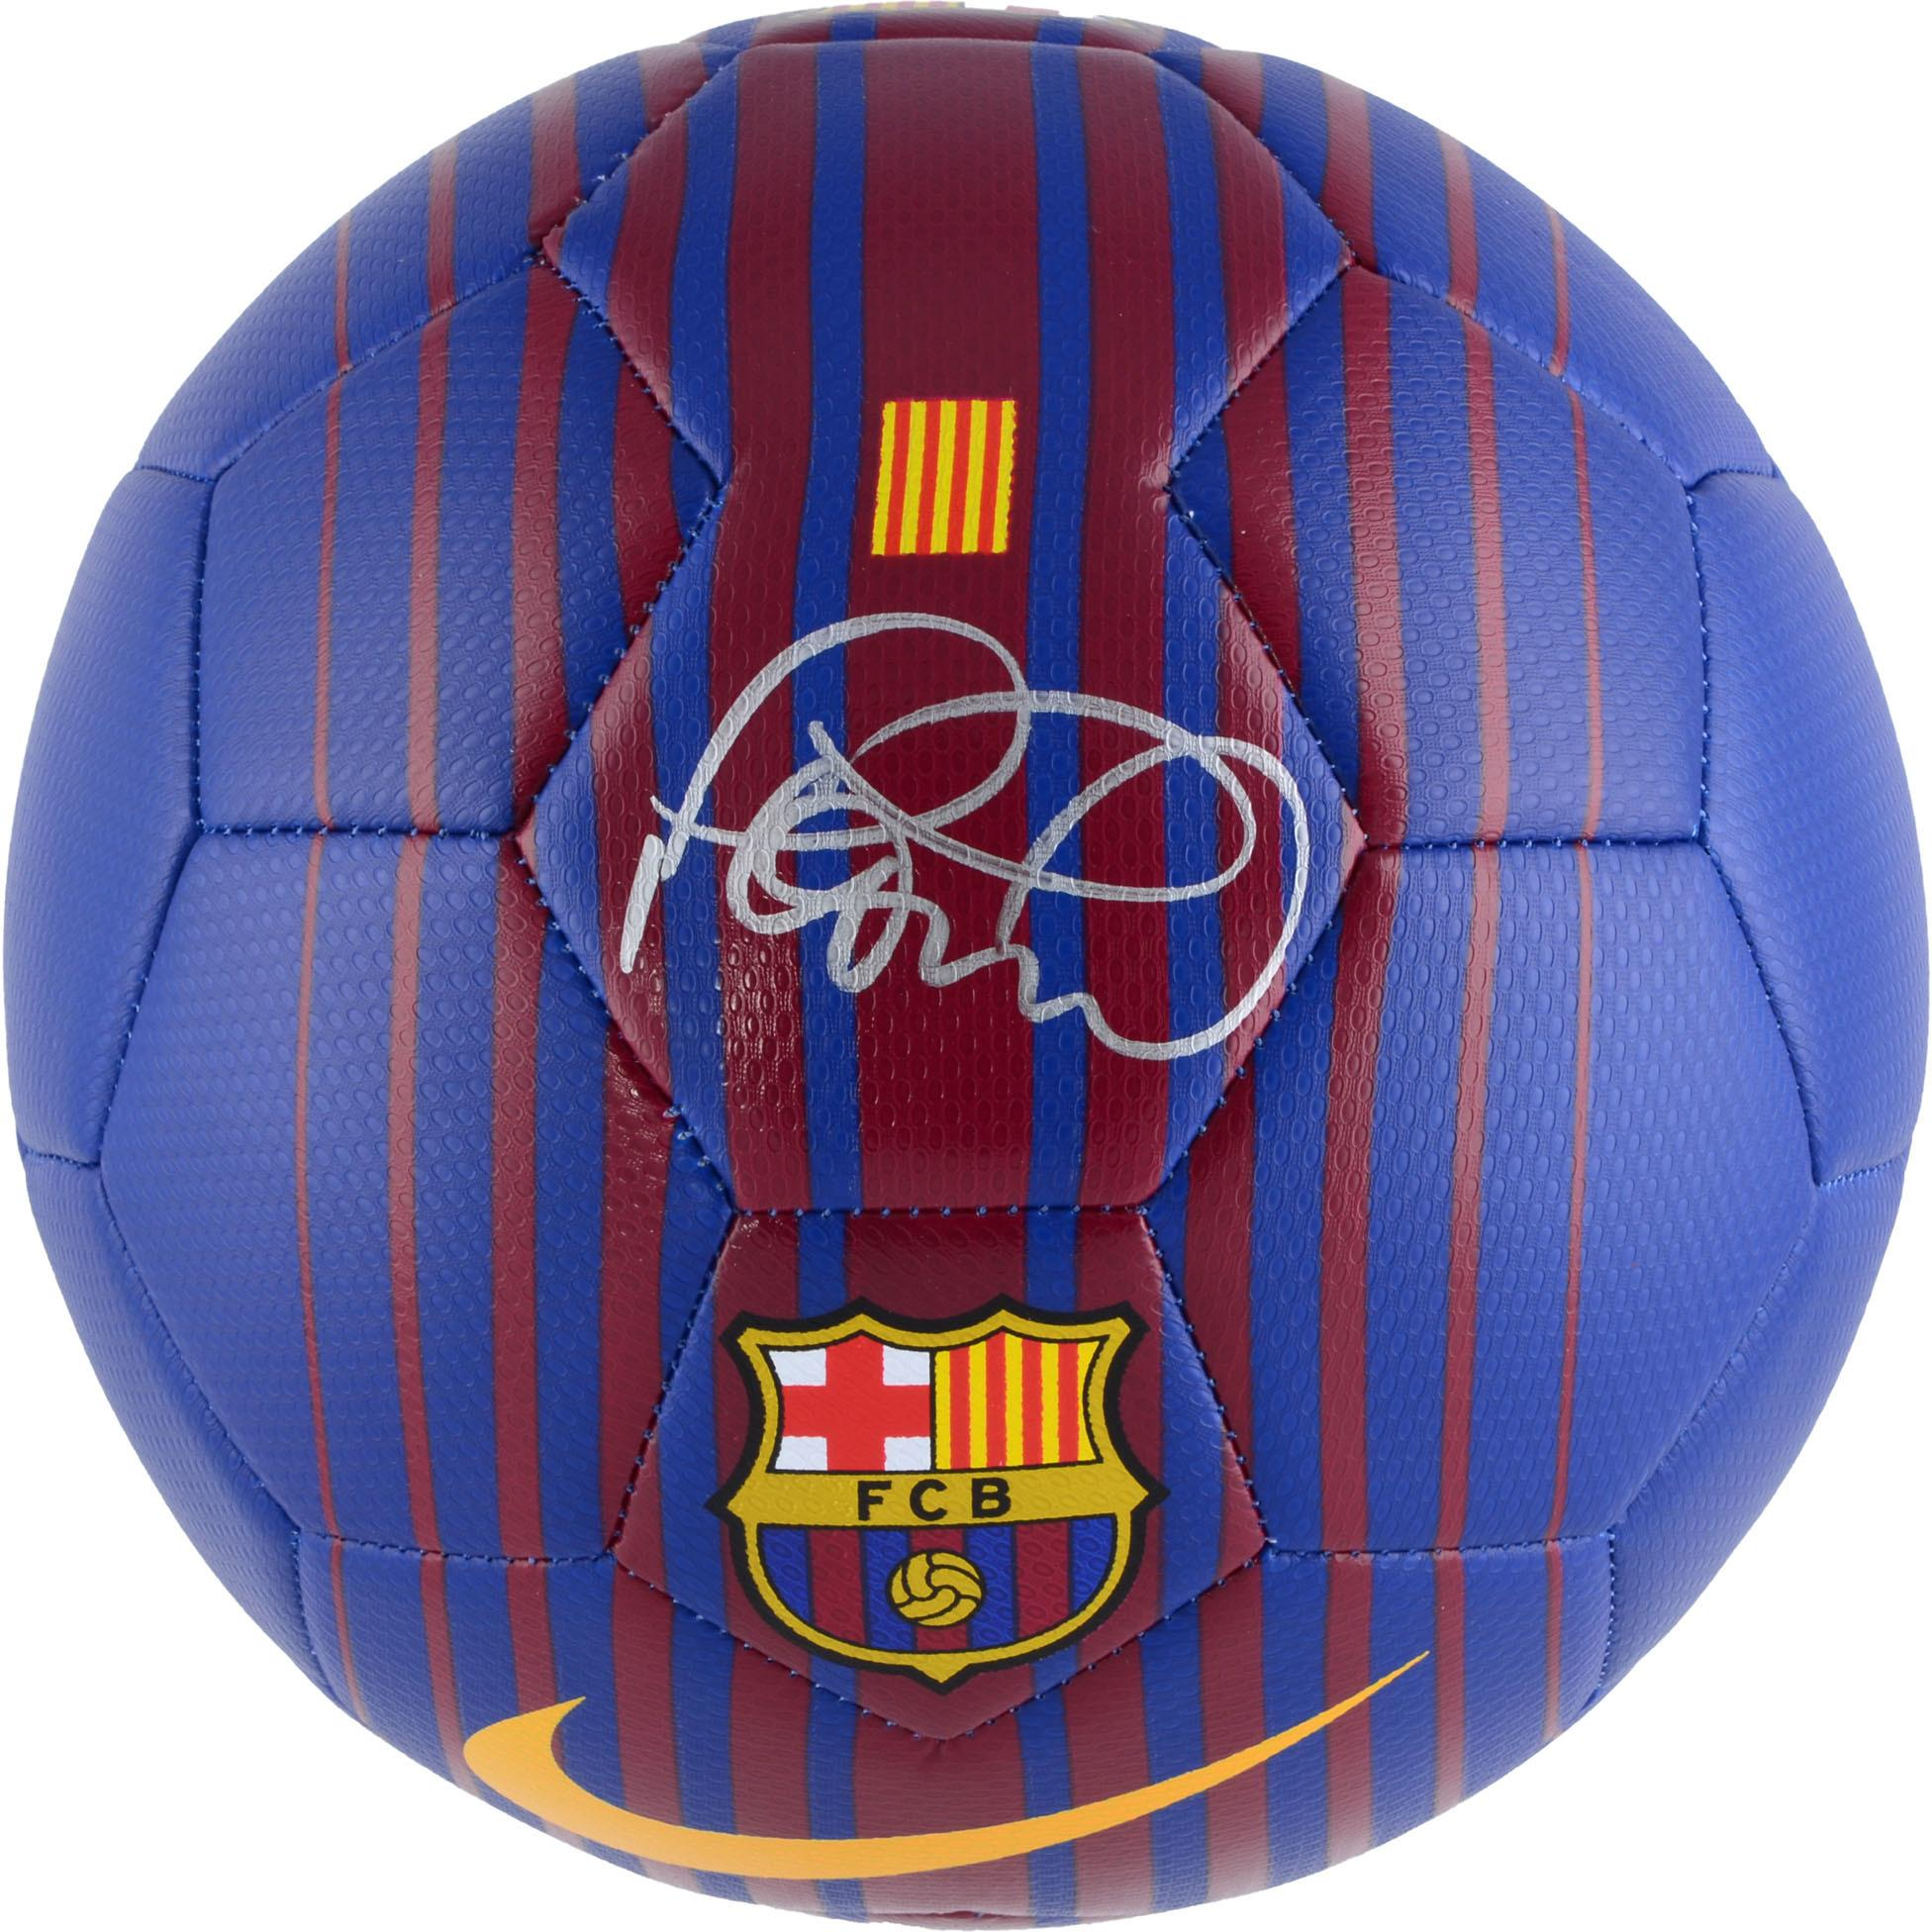 Philippe Coutinho Barcelona Autographed Barca Soccer Ball - Fanatics Authentic Certified